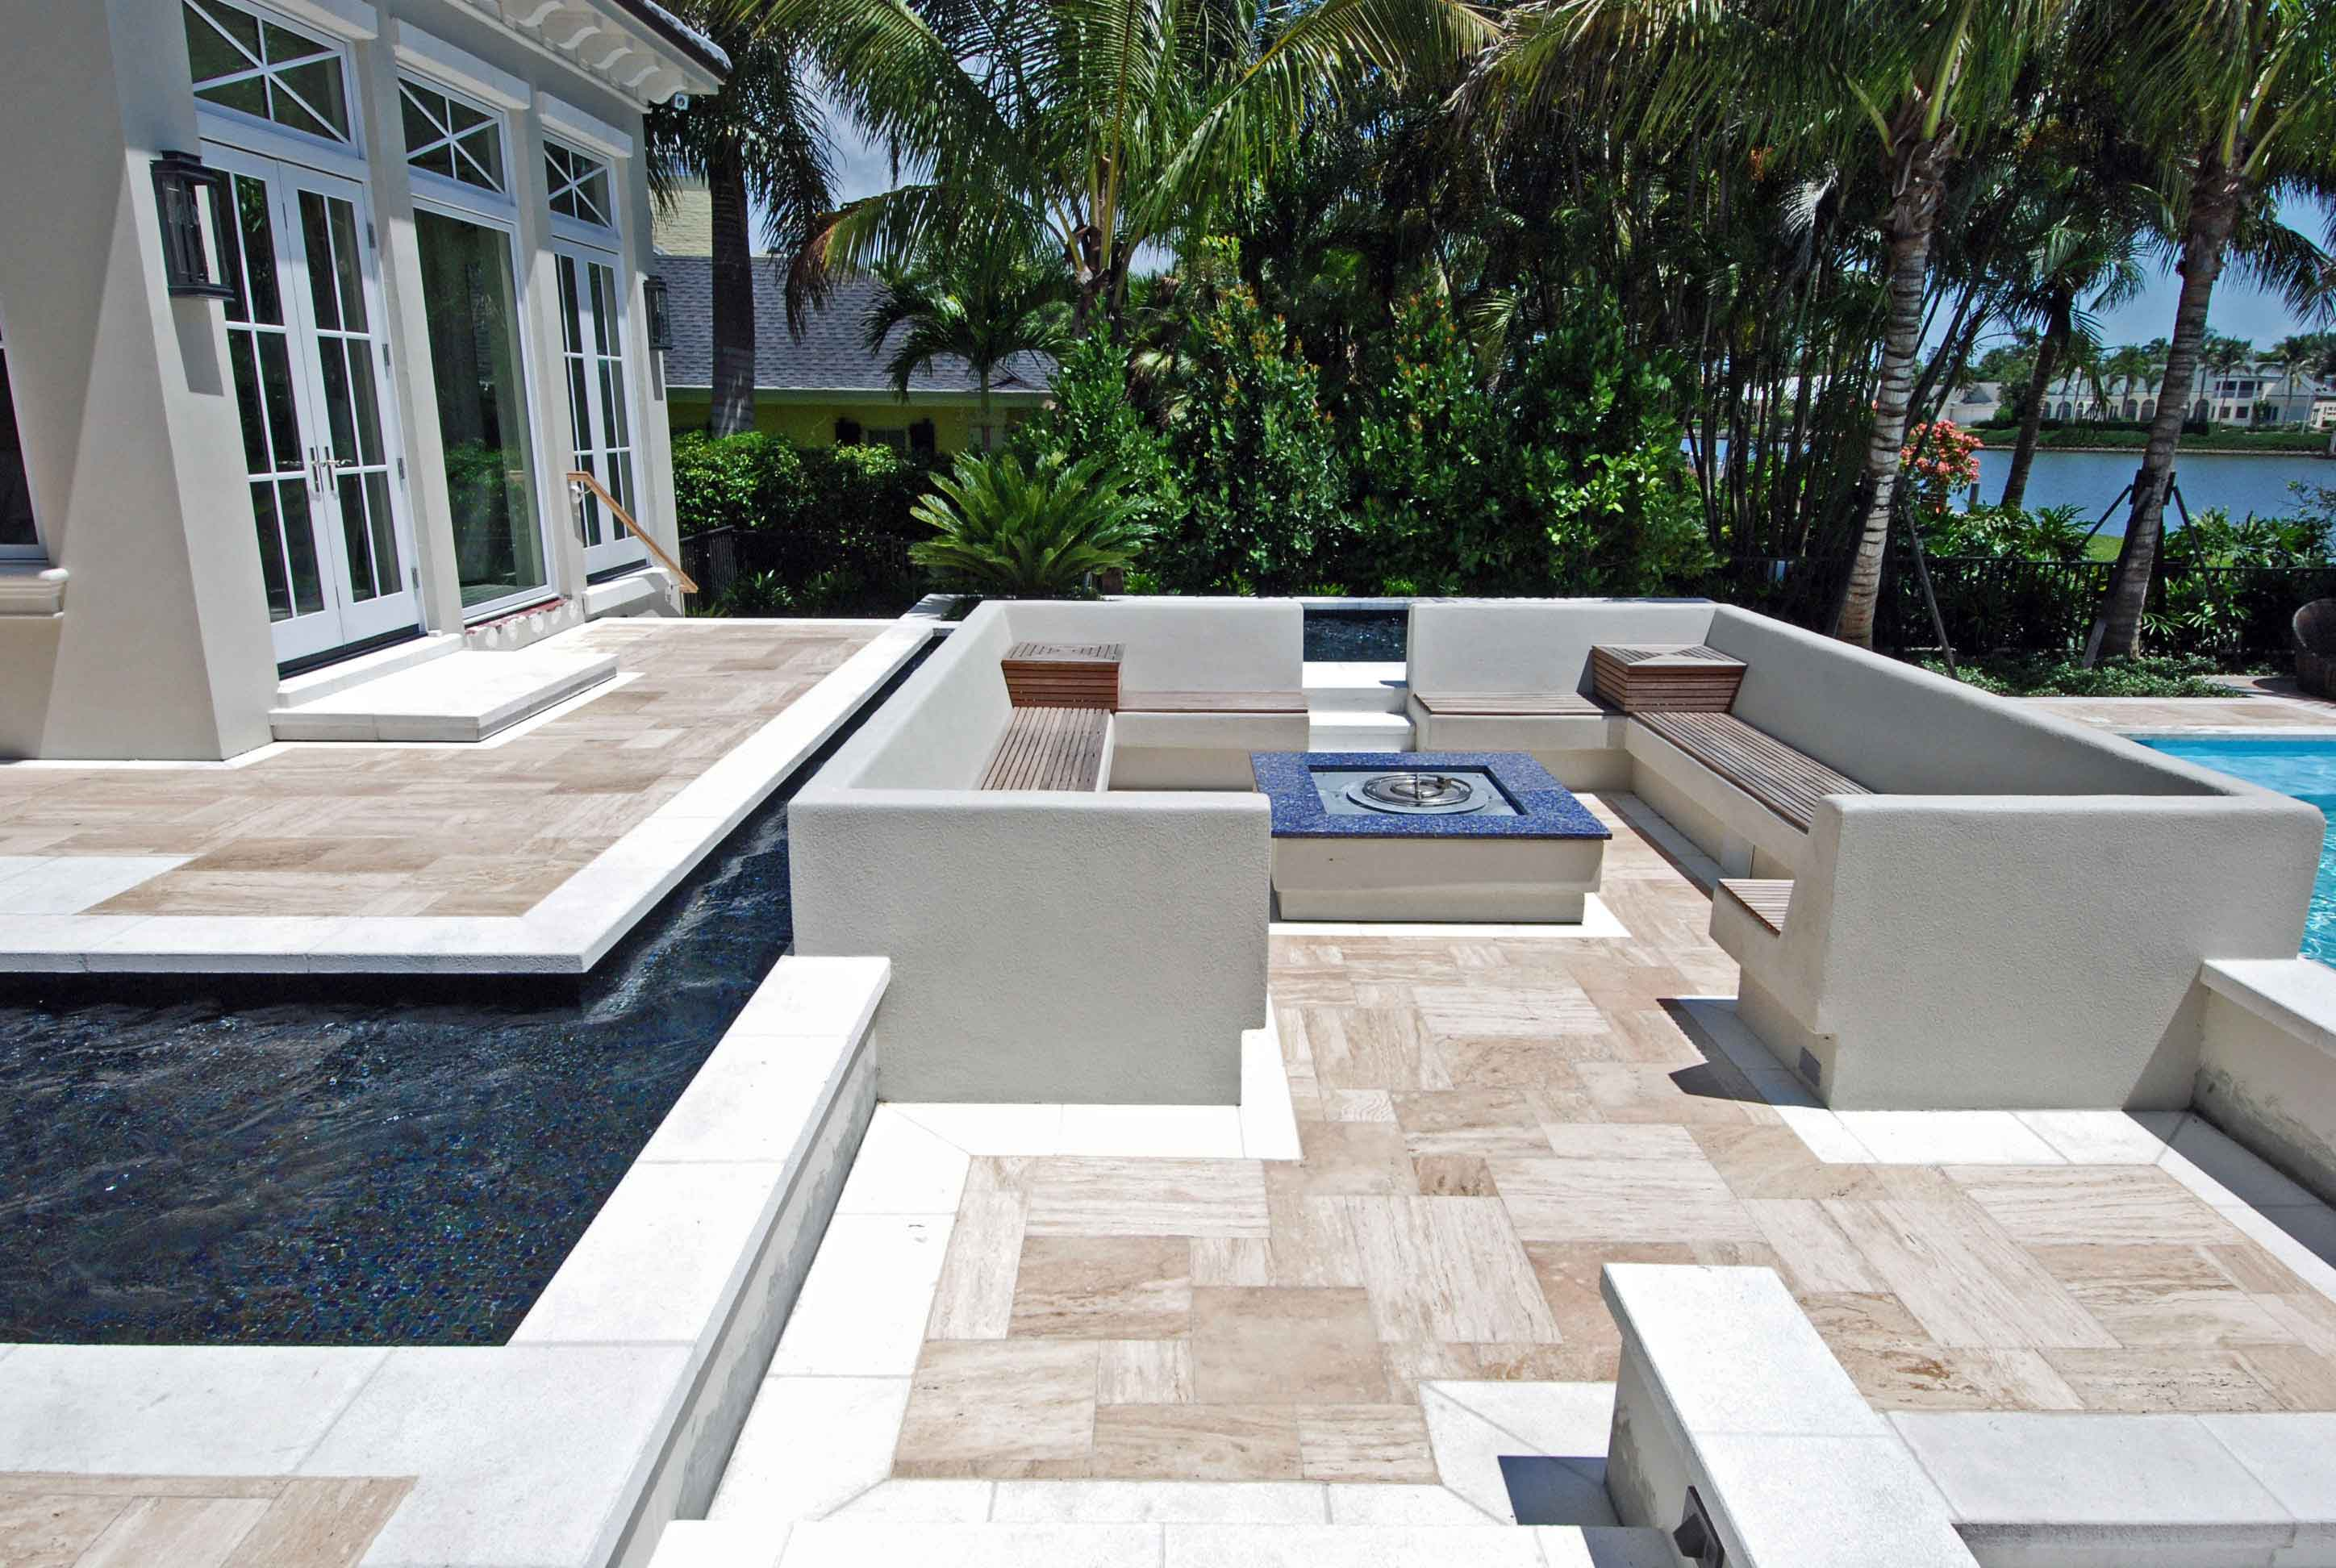 Fire Pit With Seating Surrounded By Pool Jackson Pools Inc Serving Estero Naples Fort Myers Southwest Fl